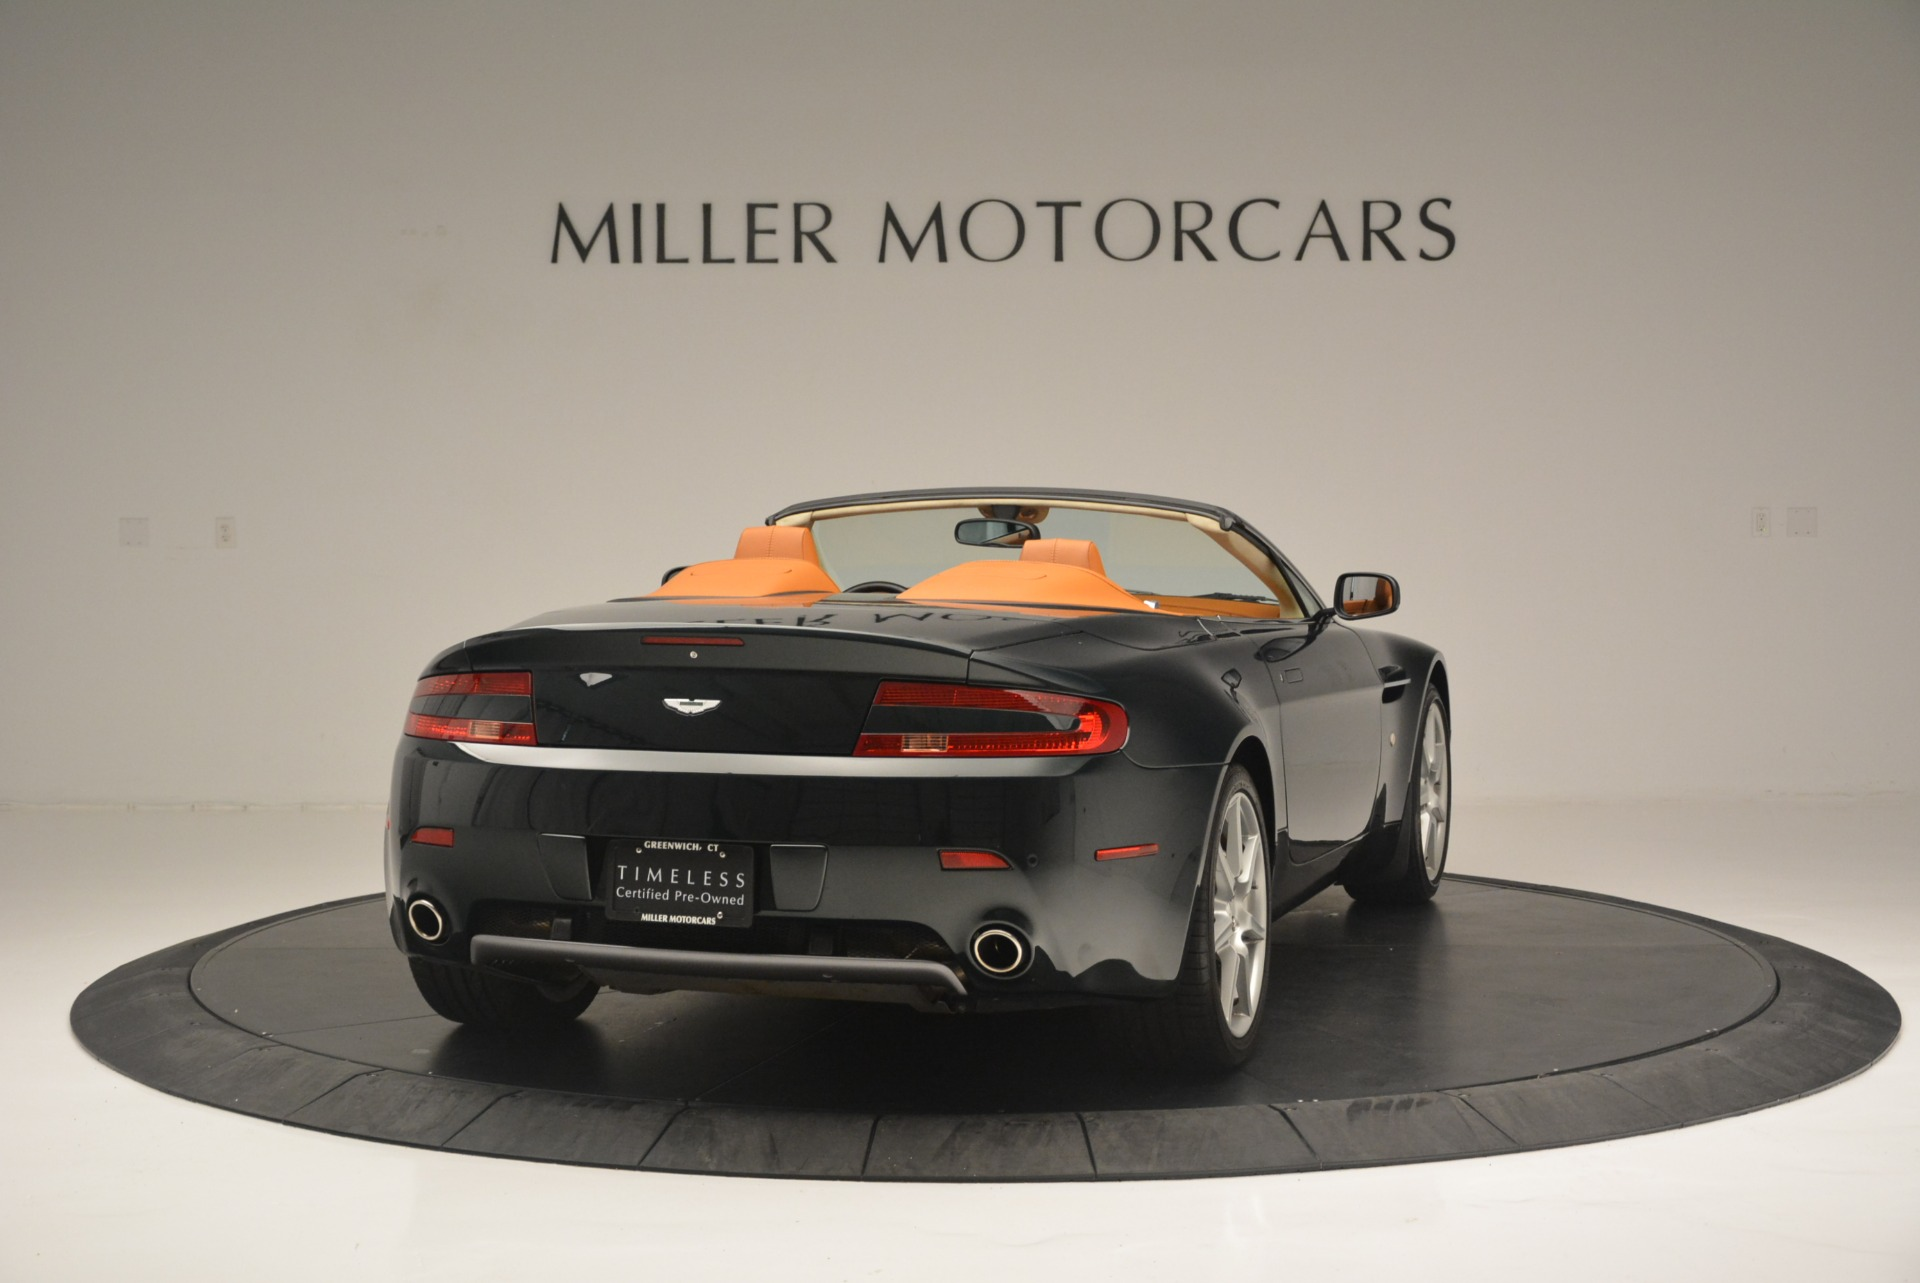 Used 2008 Aston Martin V8 Vantage Roadster For Sale In Westport, CT 2422_p7